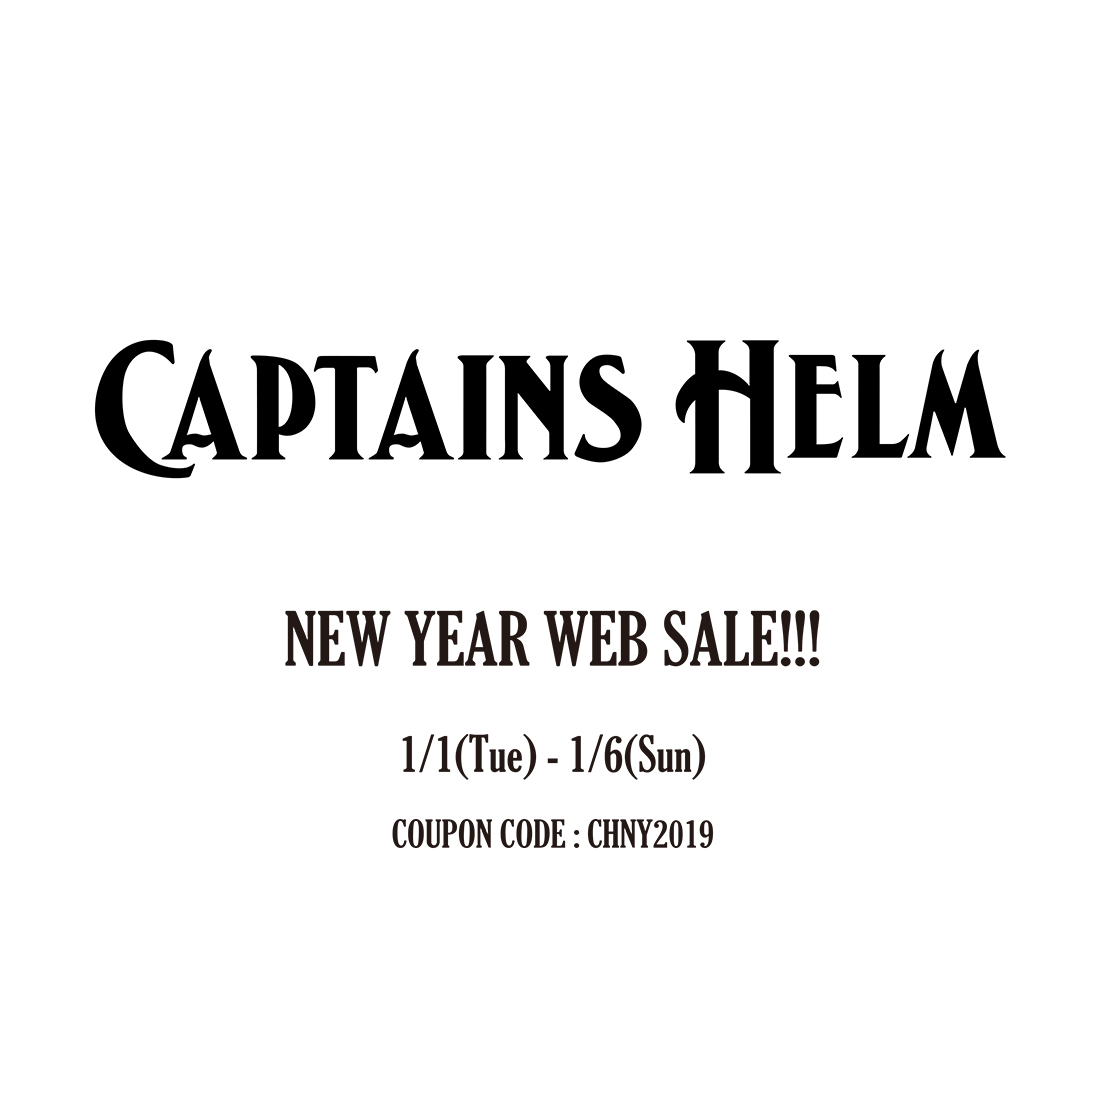 NEW YEAR WEB SALE!!!